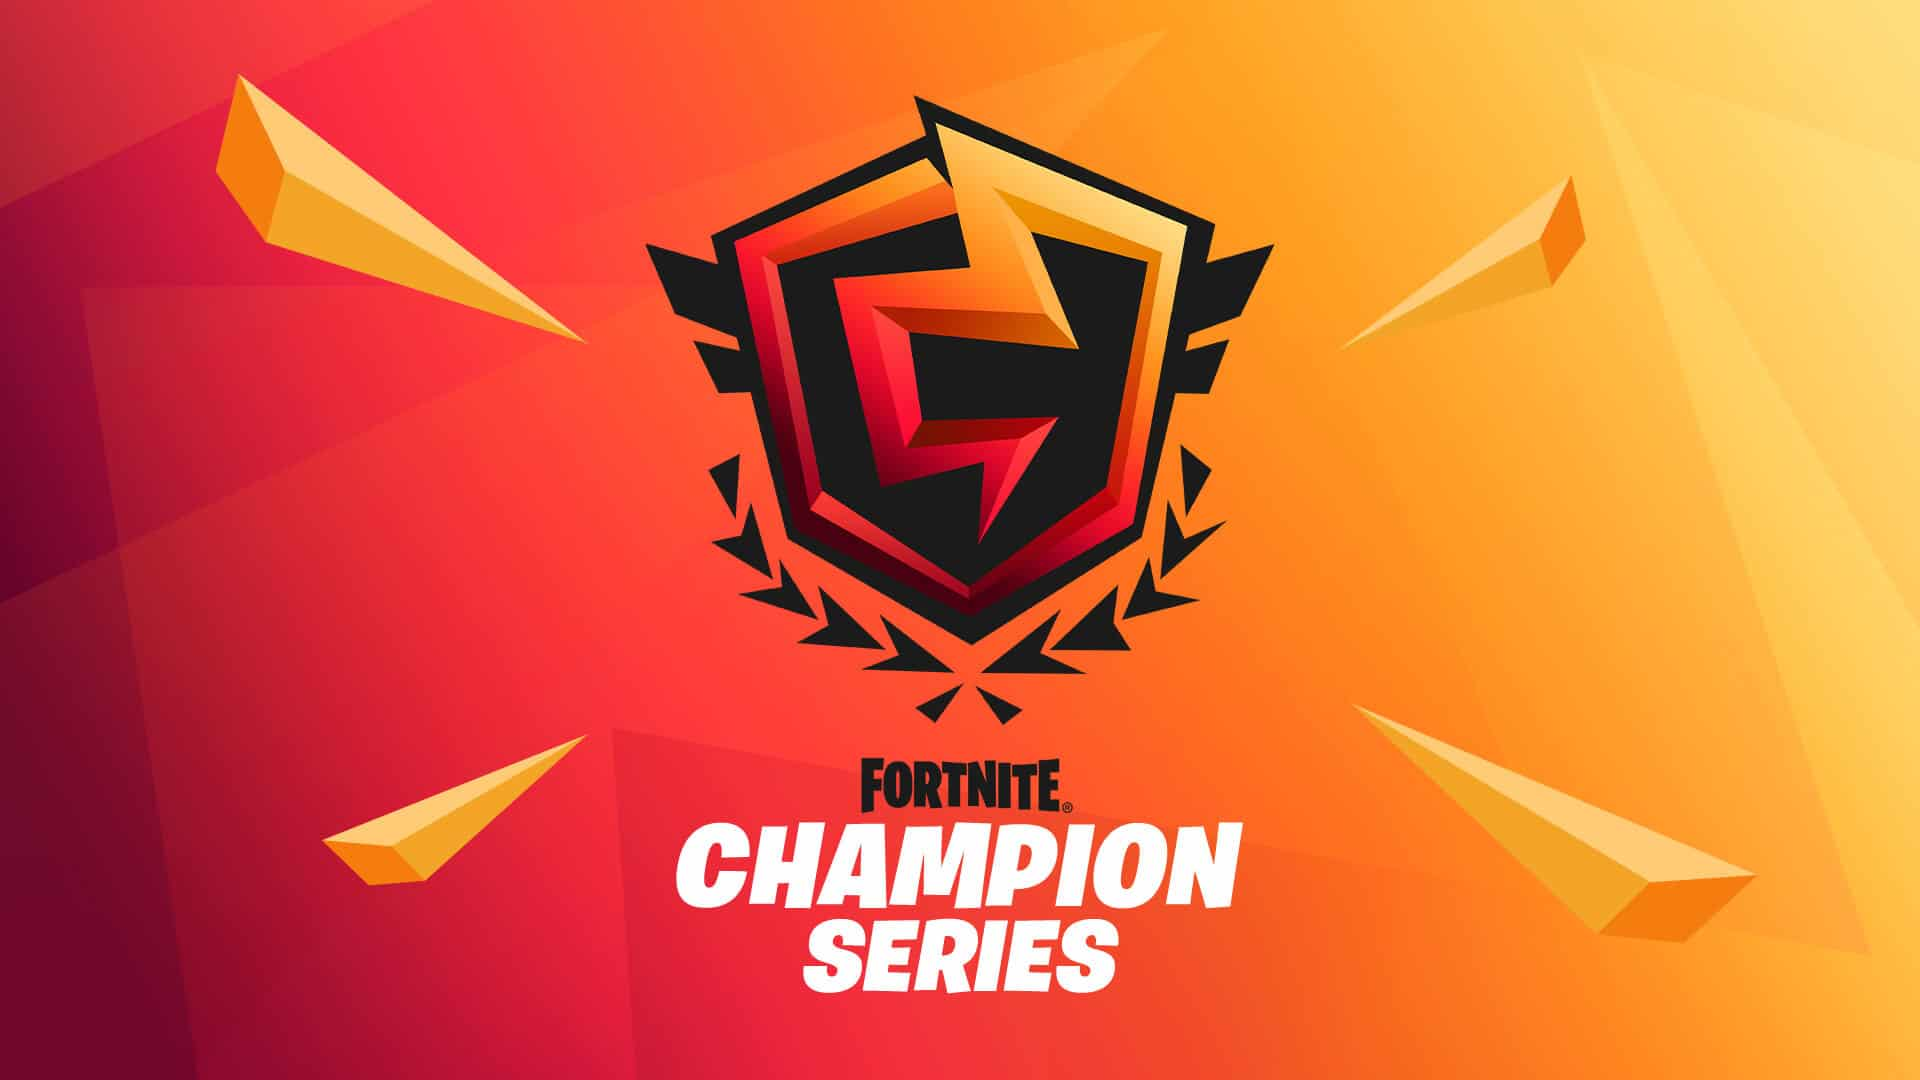 Fortnite Champion Series 2020, 2021